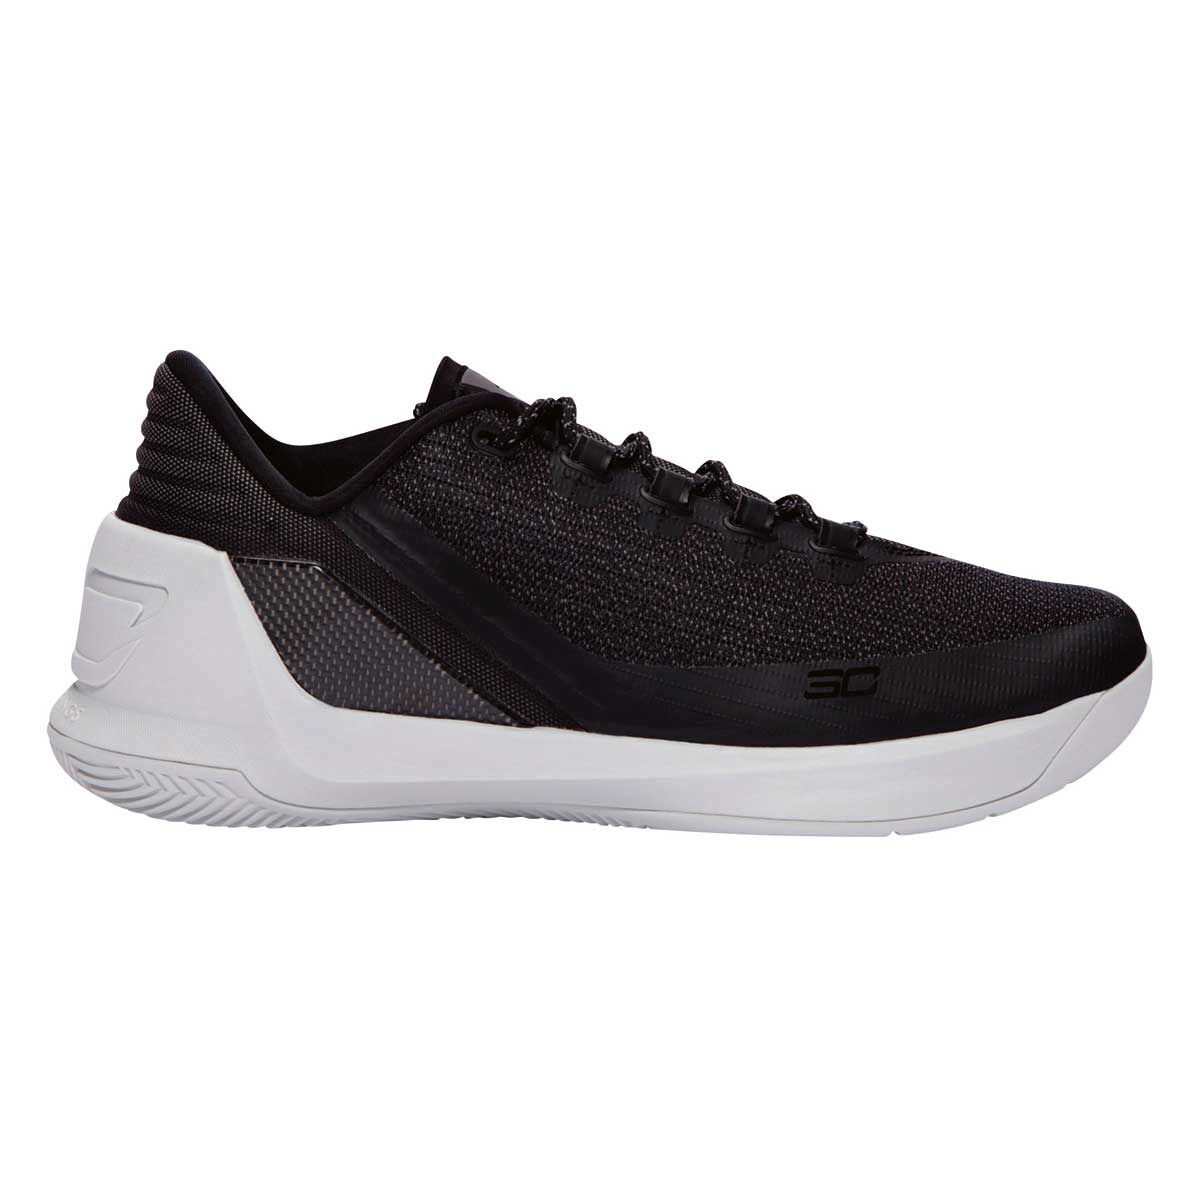 5034597efd1a ... spain under armour curry 3 low mens basketball shoes black grey us 7  black 66d12 2a2fe